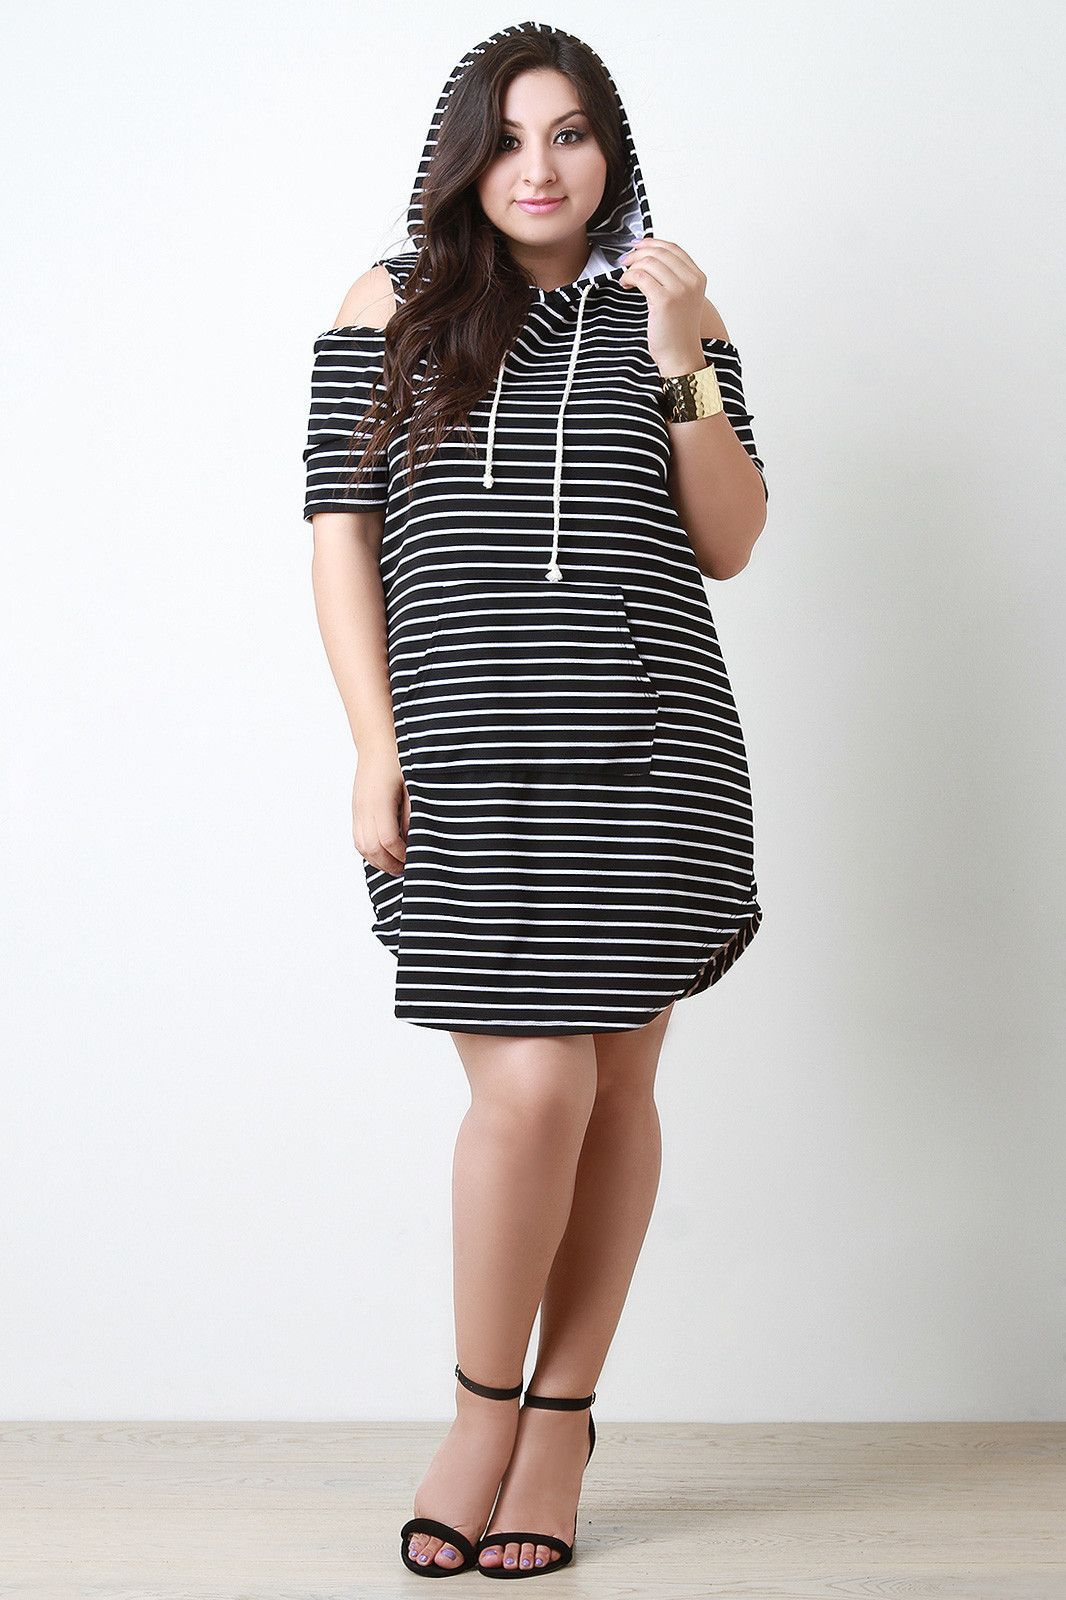 Open Shoulders Hooded Pocket Striped Dress – ZillyChic This plus size dress is shift dress silhouette; featuring a drawstring hood, short sleeves with cold shoulders, and a pocket at front. Stripe print throughout. Textured knit. 95% Polyester. 5% Spandex. Made in USA.